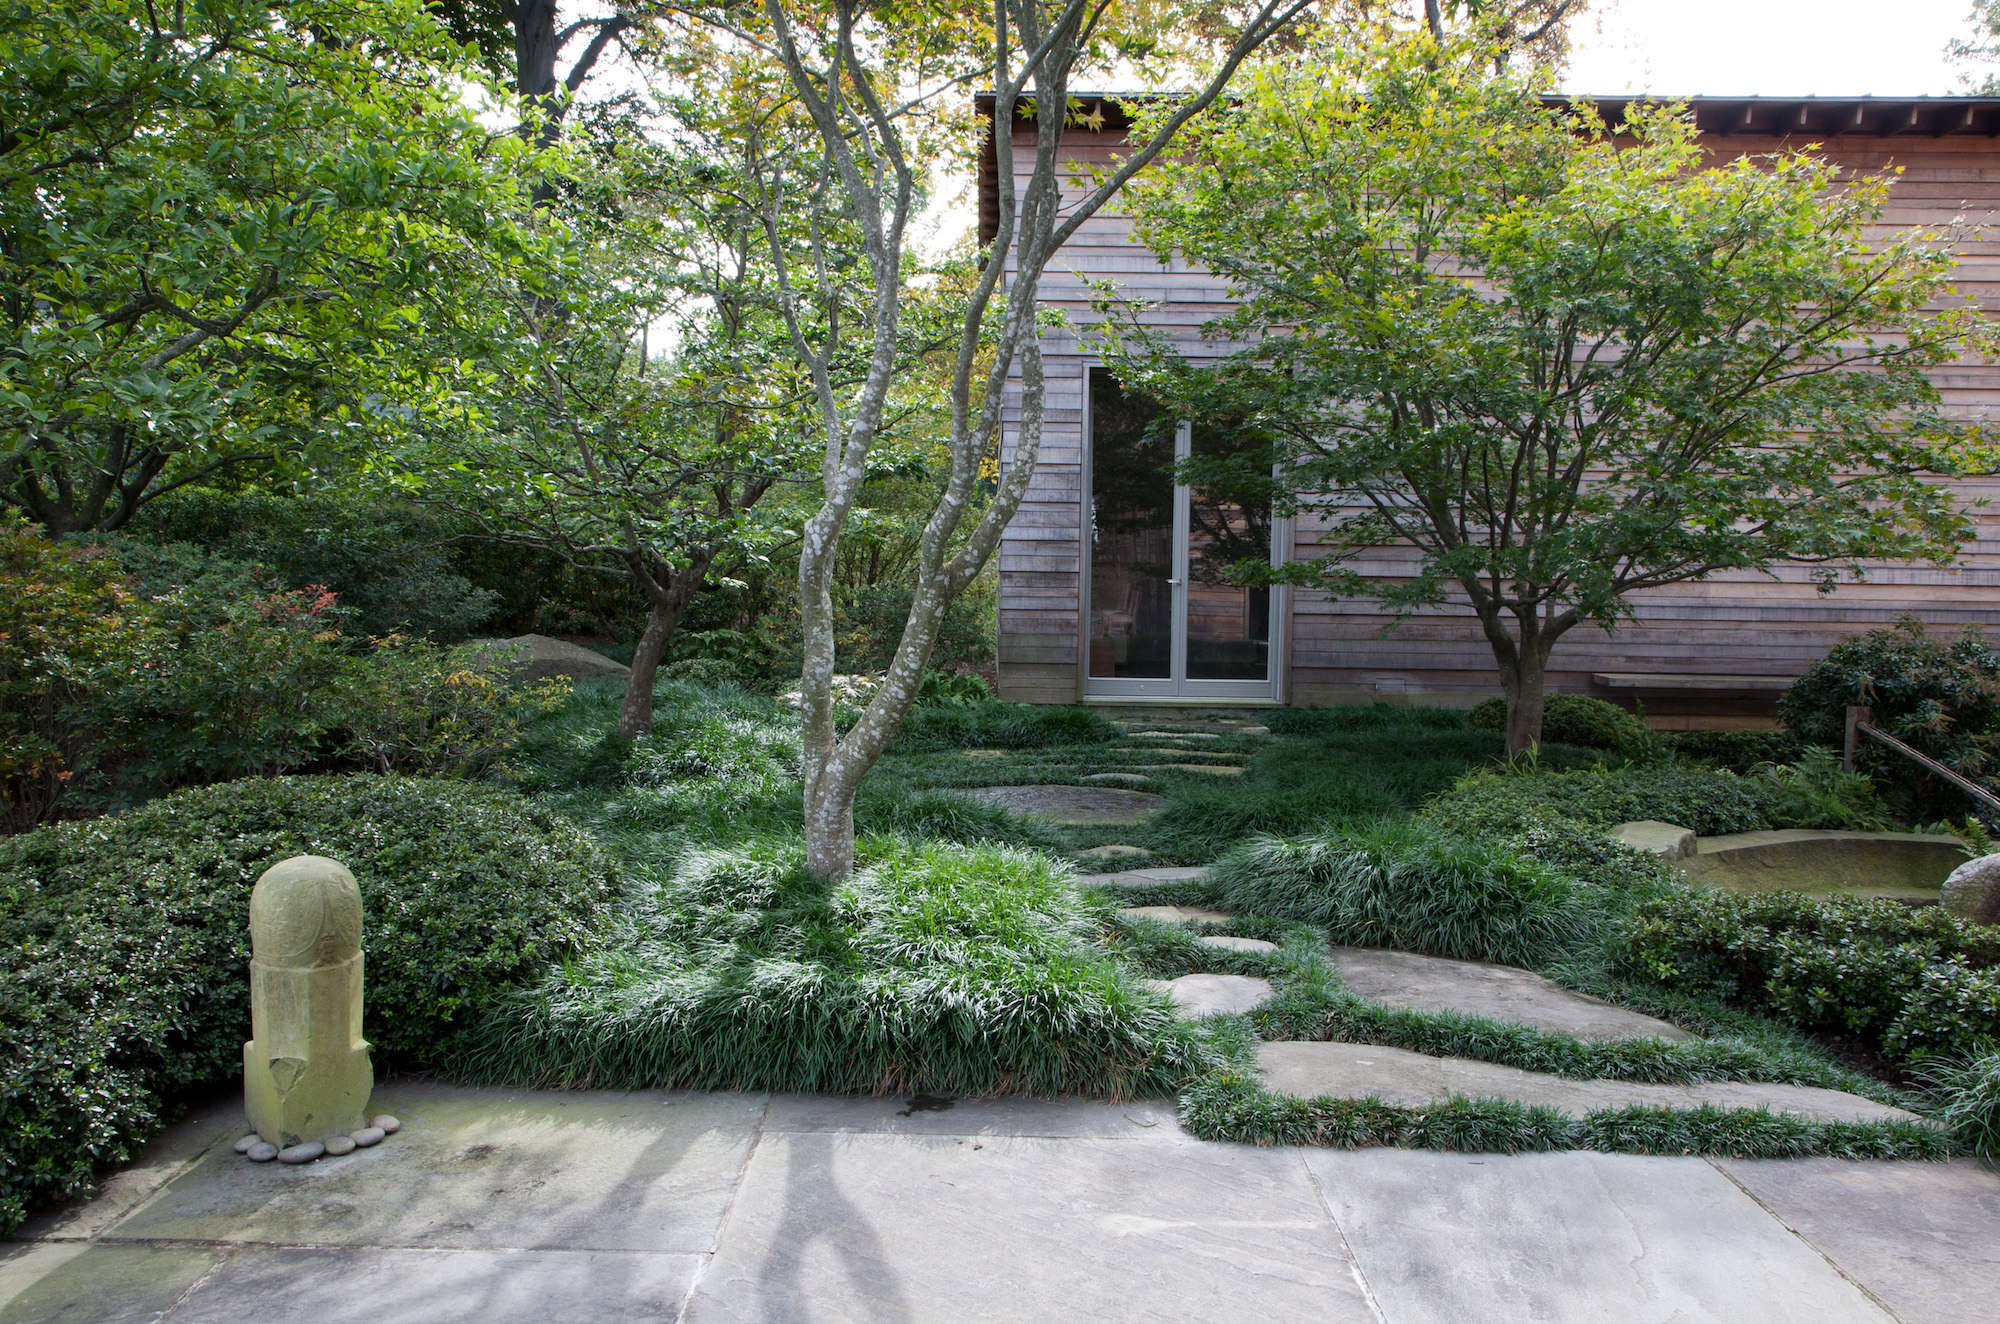 From a stone terrace off the kitchen of the main residence, the forest walk leads to a detached studio behind the house. Keane used mondo grass liberally throughout the garden, in two varieties: standard mondo grass (as shown around the base of the Japanese maple at front), and a dwarf variety between the pathway stones.